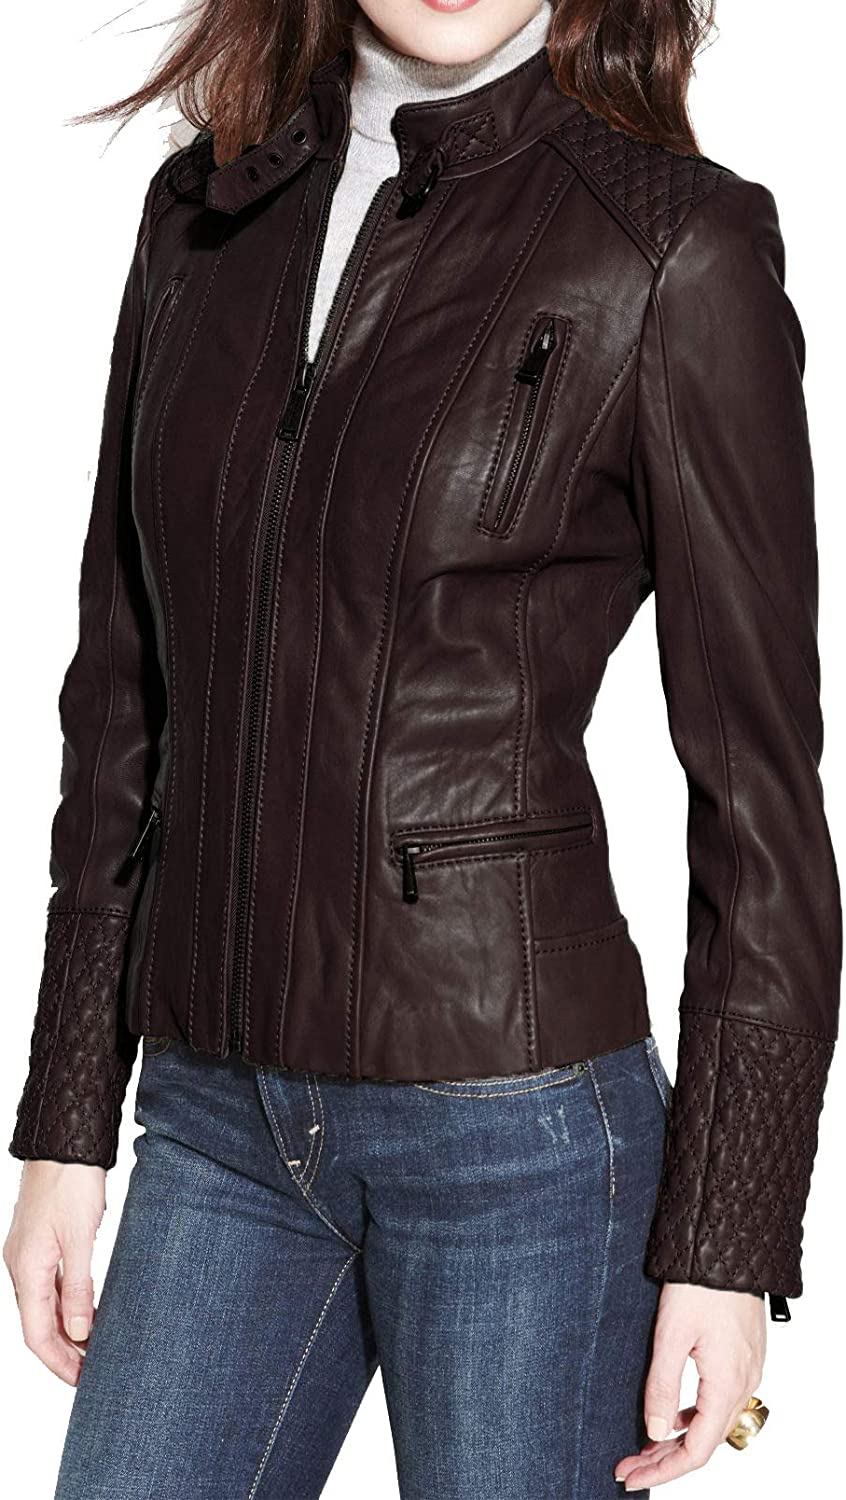 Alishbah Women's Leather Jacket Stylish Motorcycle Biker Genuine Lambskin WJ323